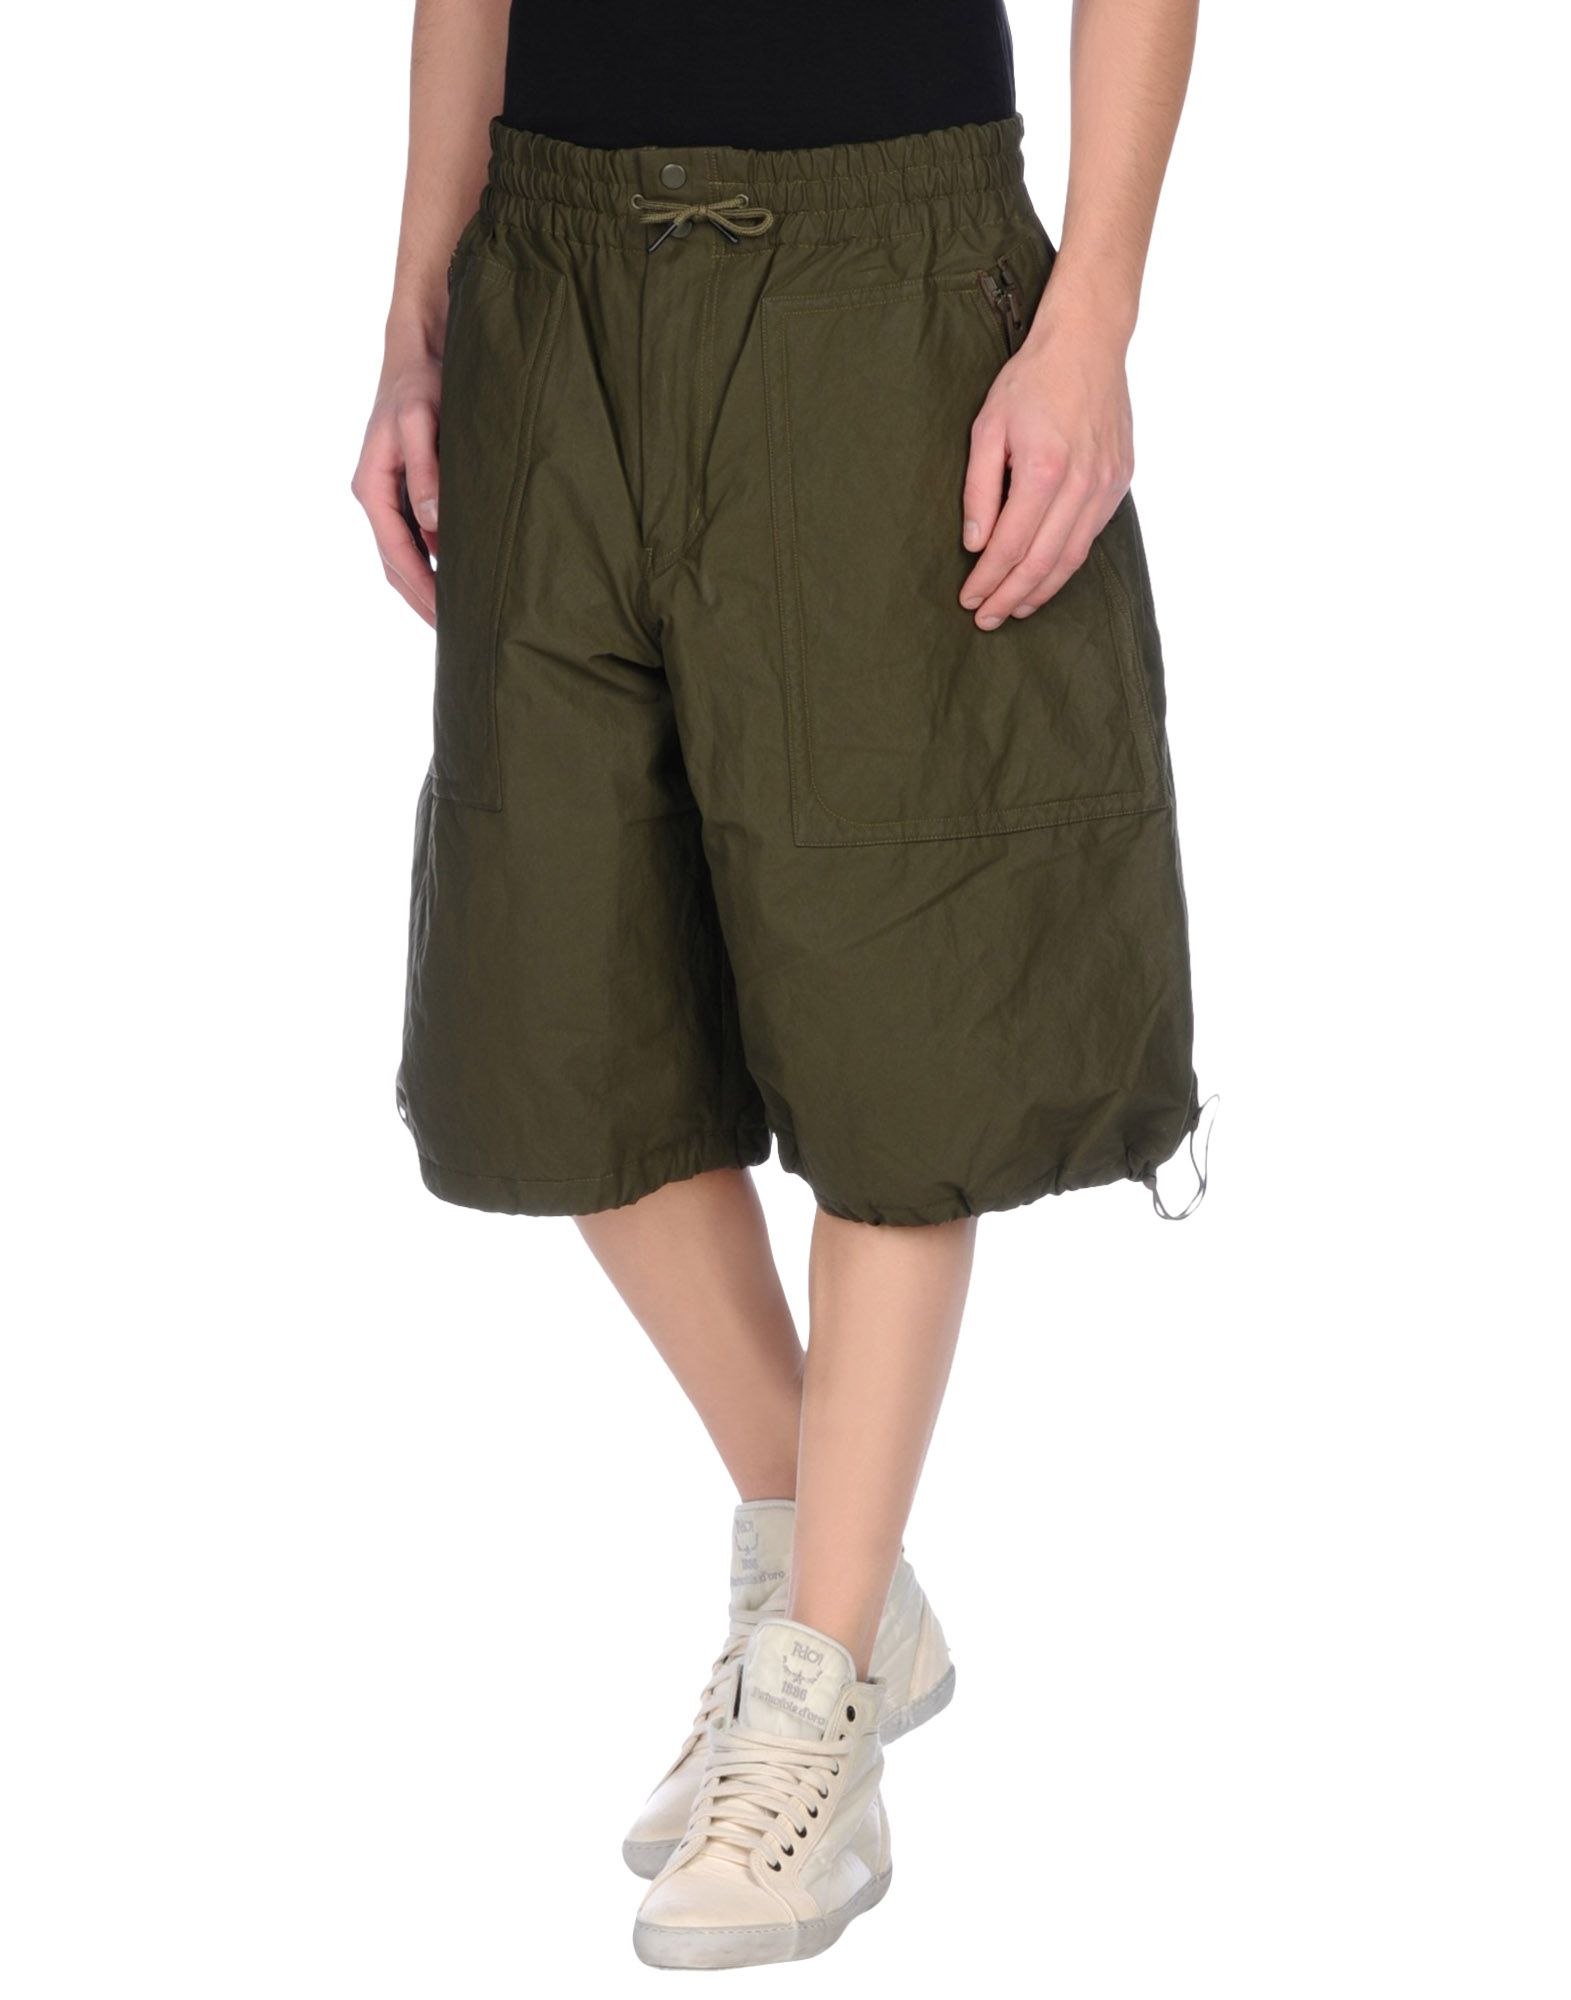 Bermuda Shorts:: MENS:: Footwear This online store is powered by X-Cart shopping-cart-software This X-Cart Gold installation is licensed for evaluation purposes only and this message must be kept visible at the top of every store page.